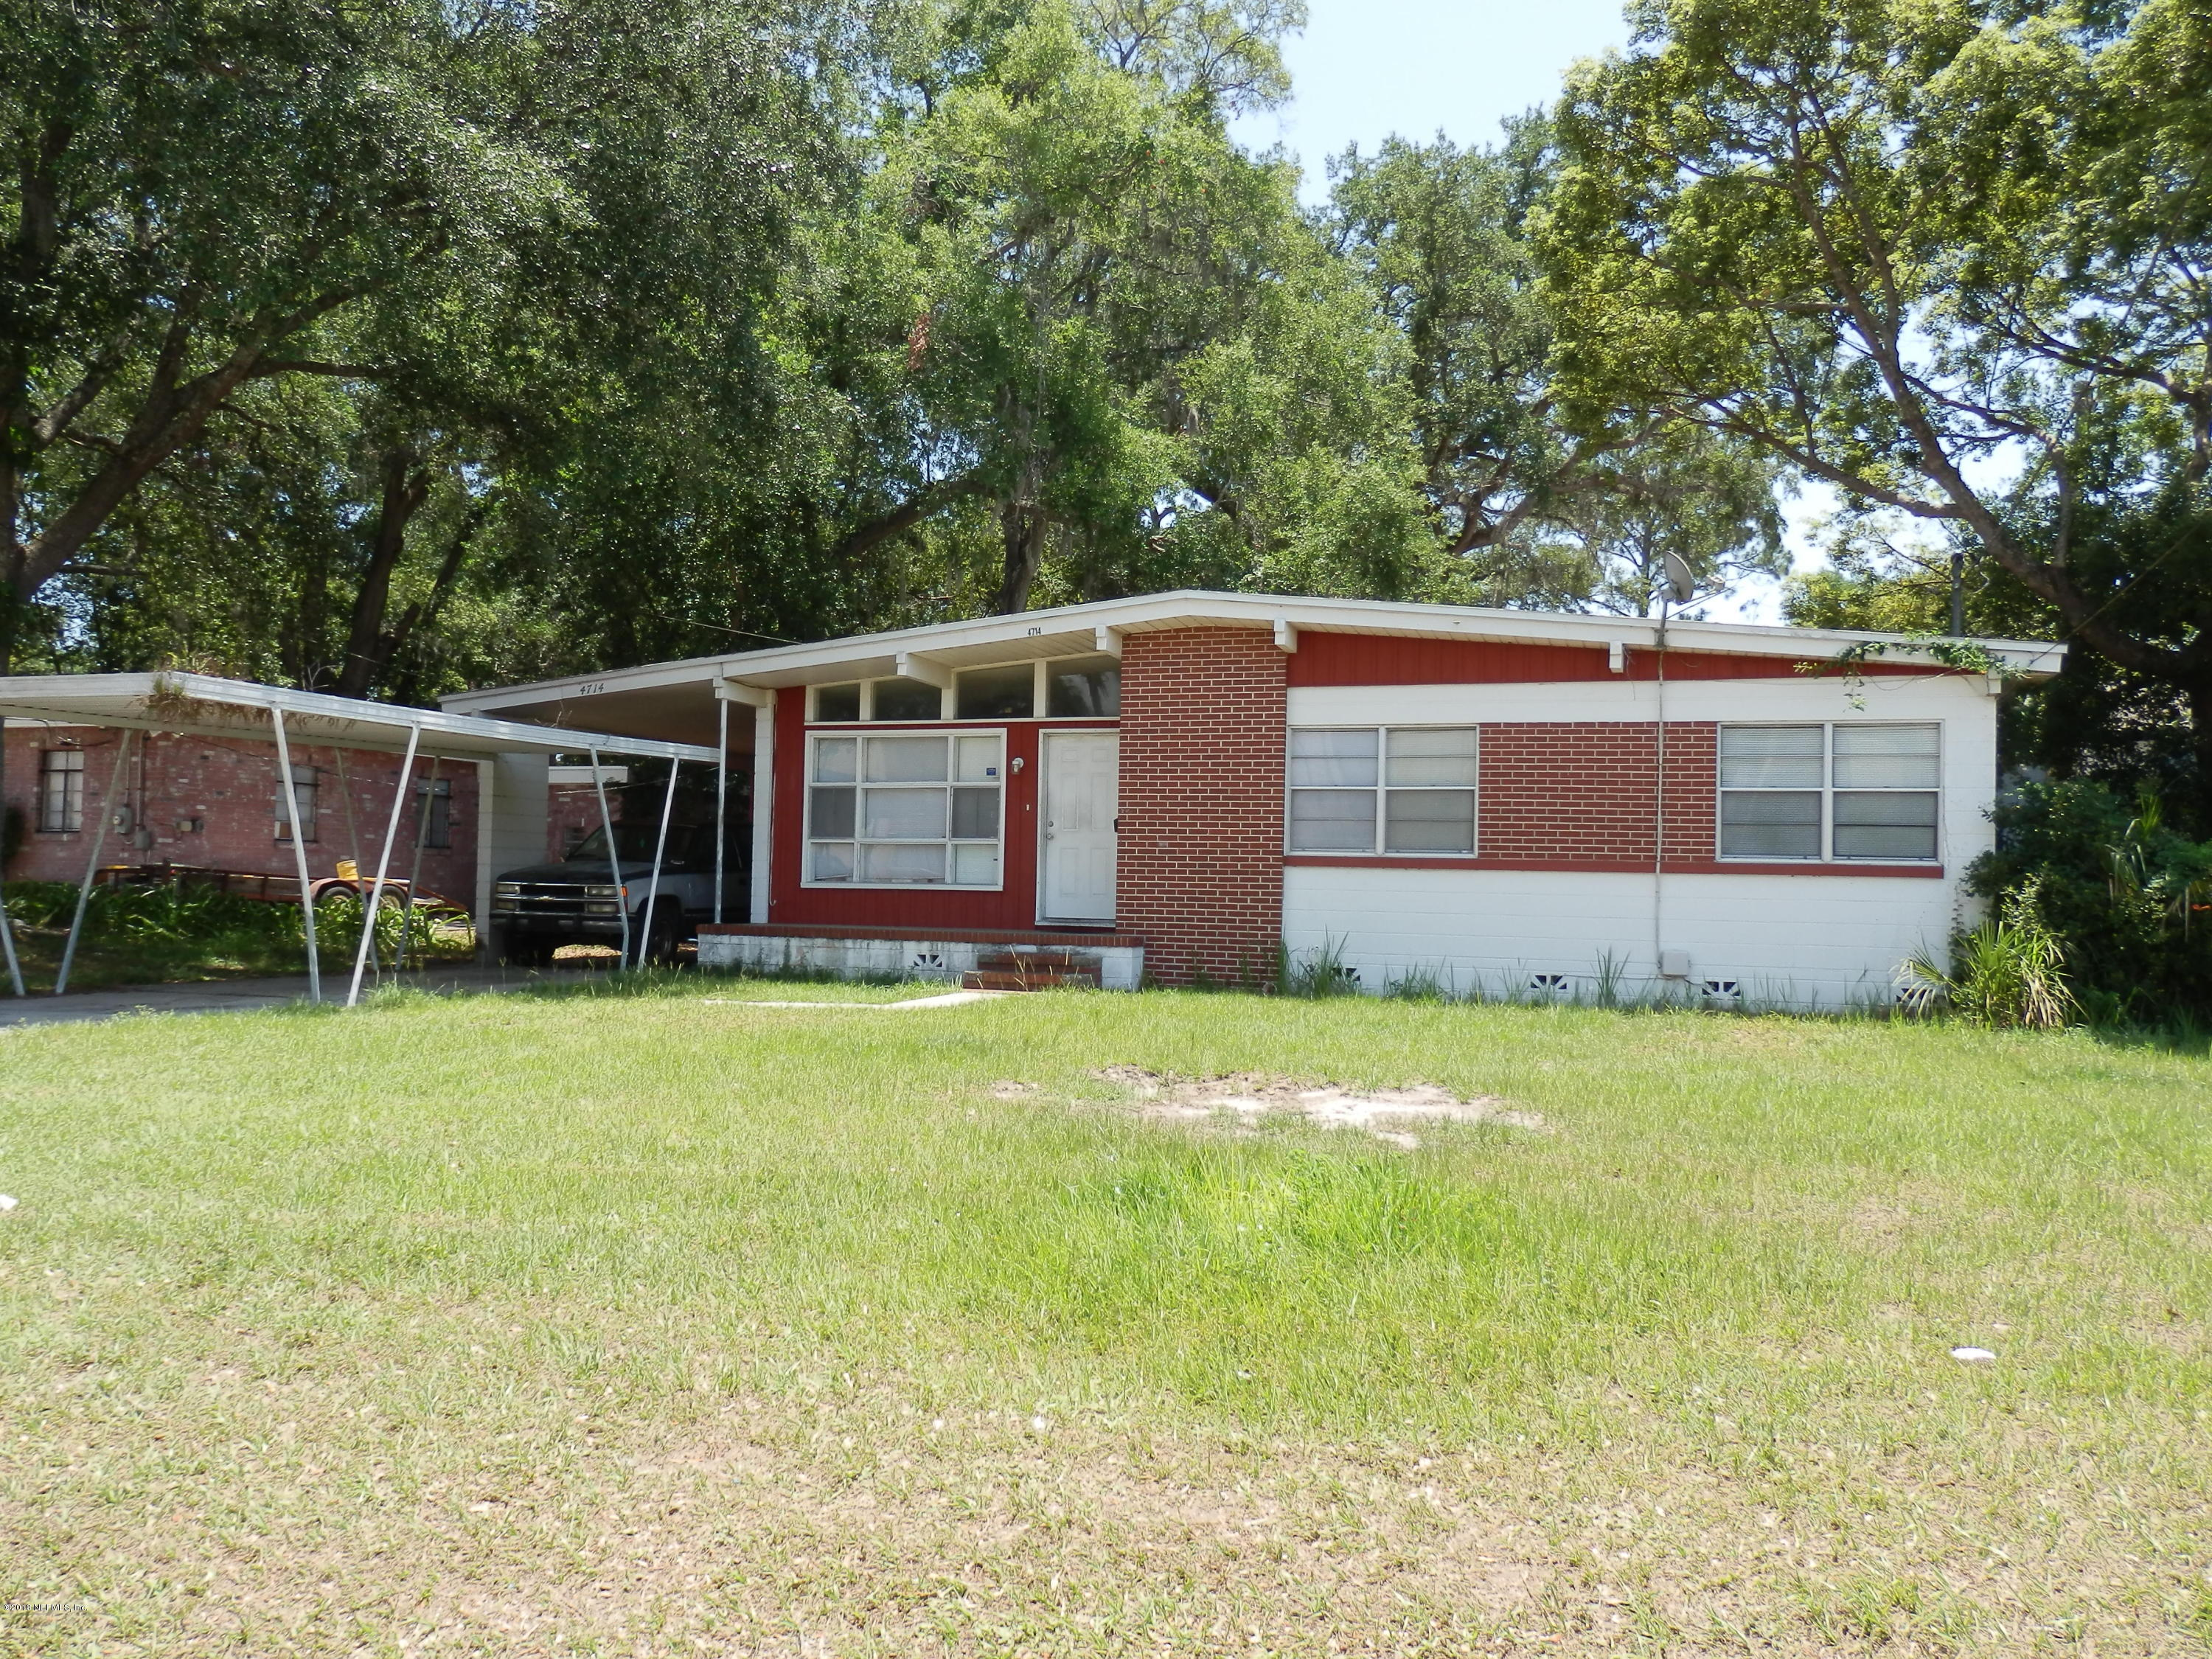 4714 QUARTERLAND, JACKSONVILLE, FLORIDA 32207, 3 Bedrooms Bedrooms, ,1 BathroomBathrooms,Residential - single family,For sale,QUARTERLAND,953730